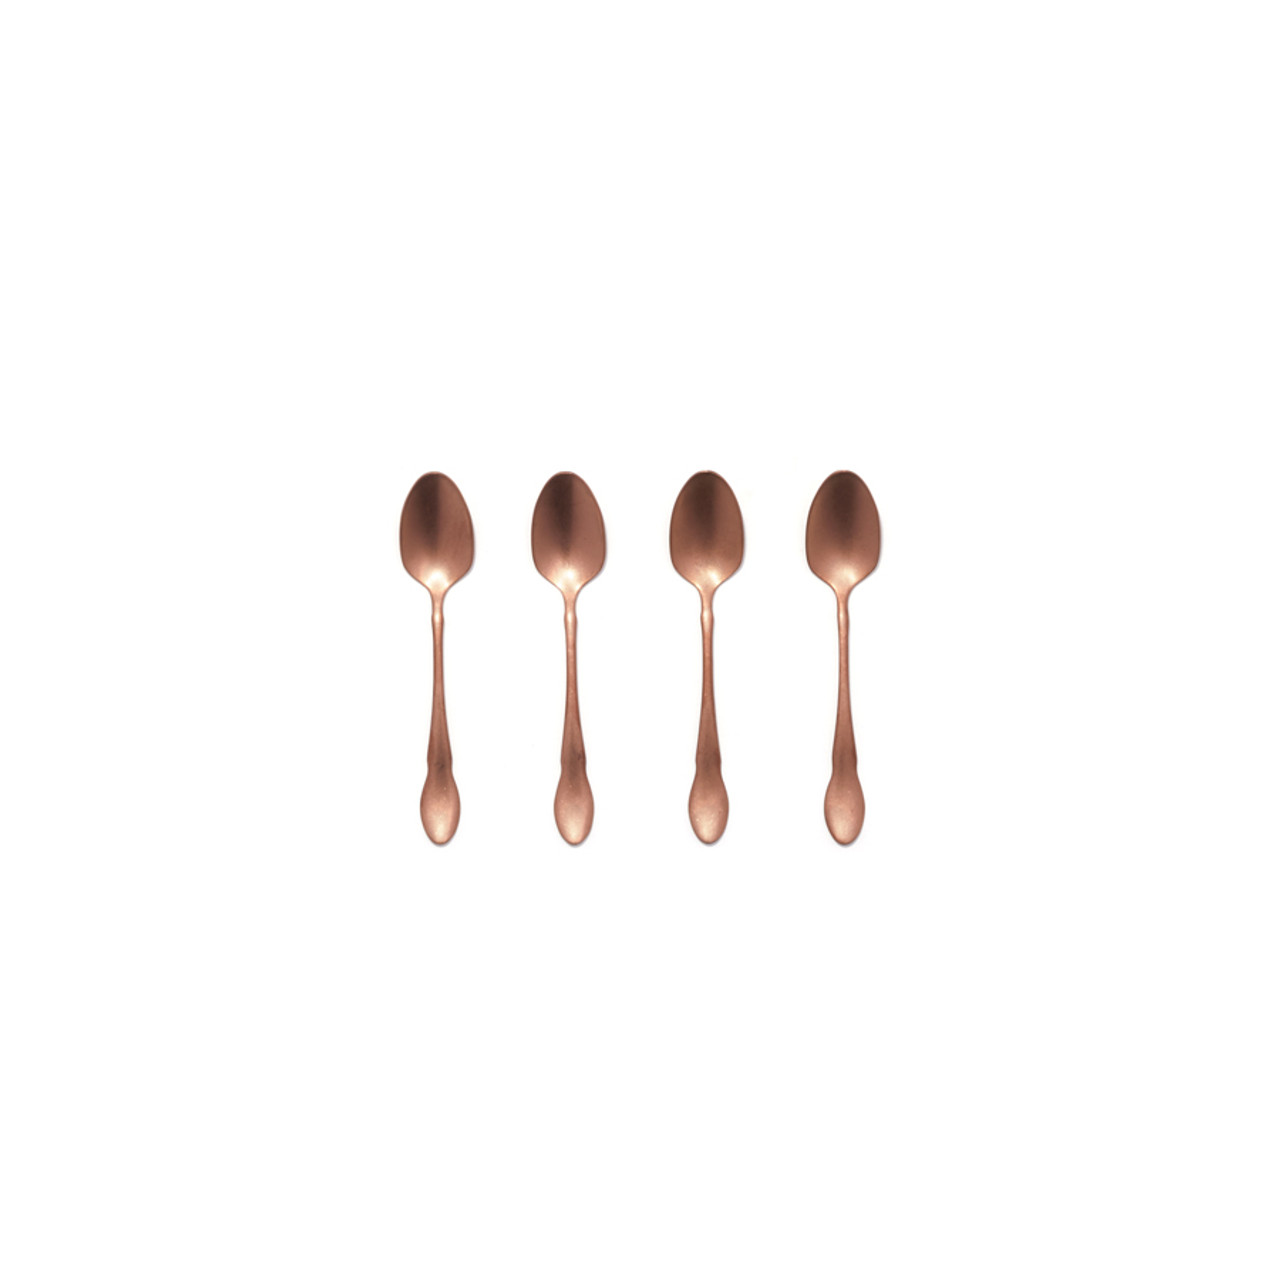 Maple - 4 piece minispoon set